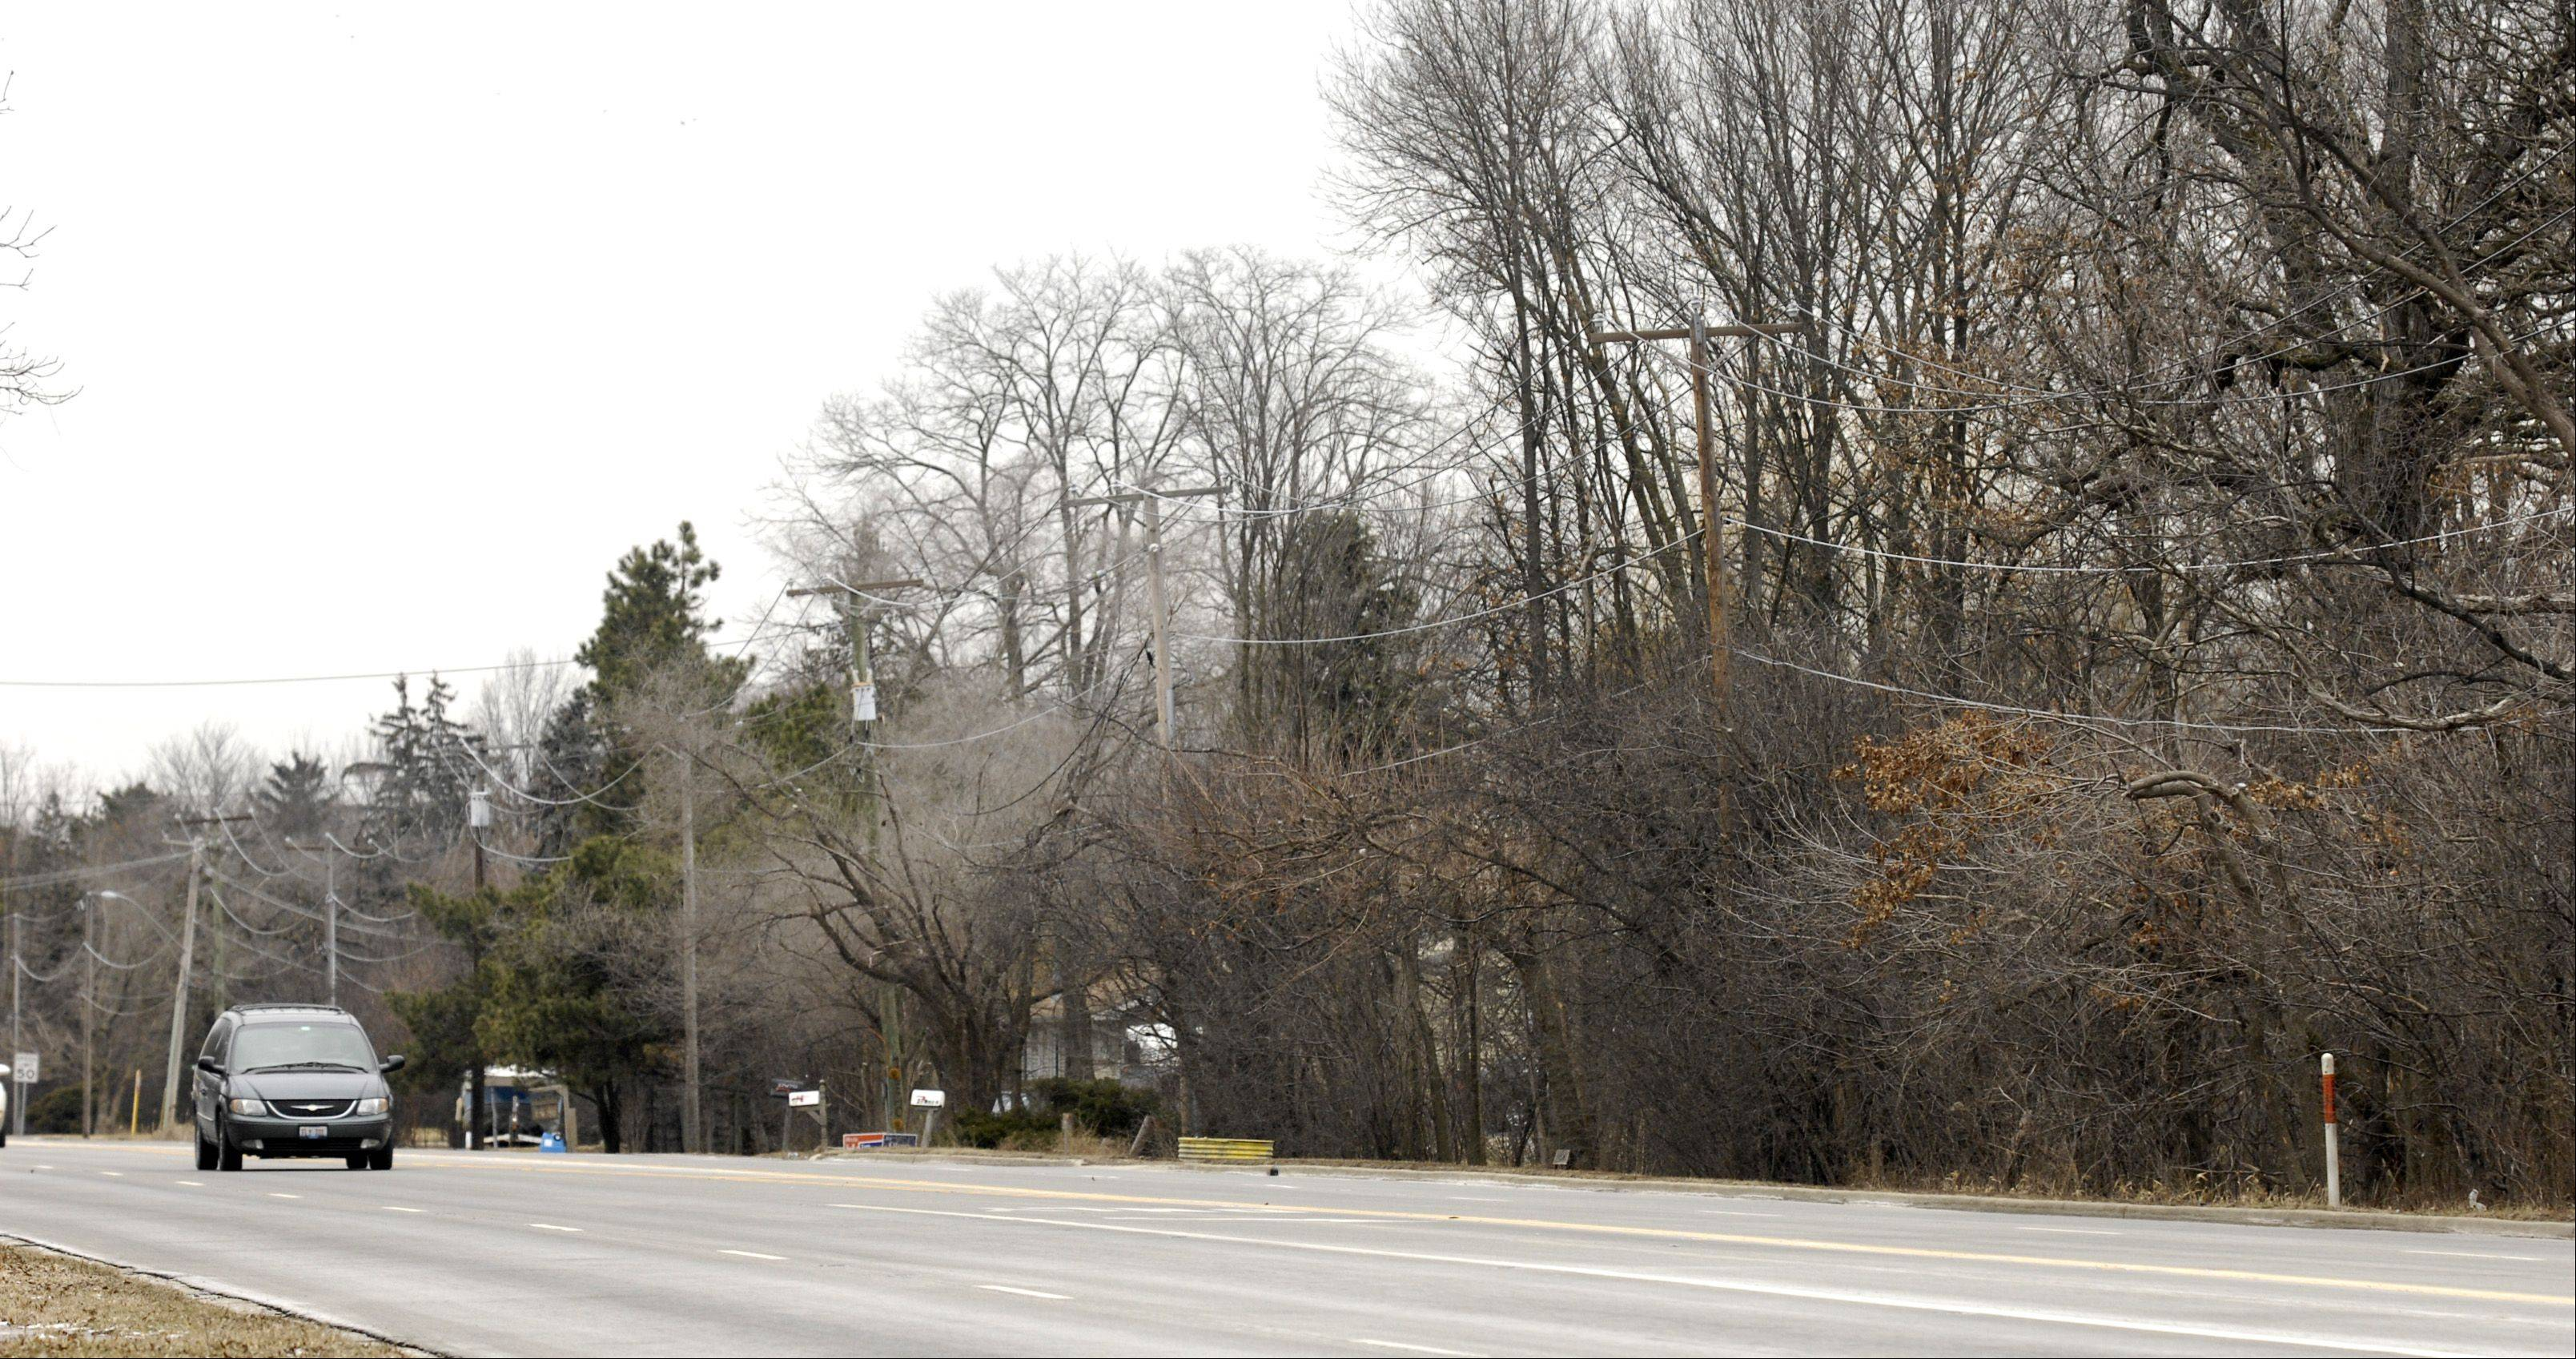 A majority of the Winfield village board is pushing a plan to rezone parts of Roosevelt Road to clear the way for possible commercial redevelopment.